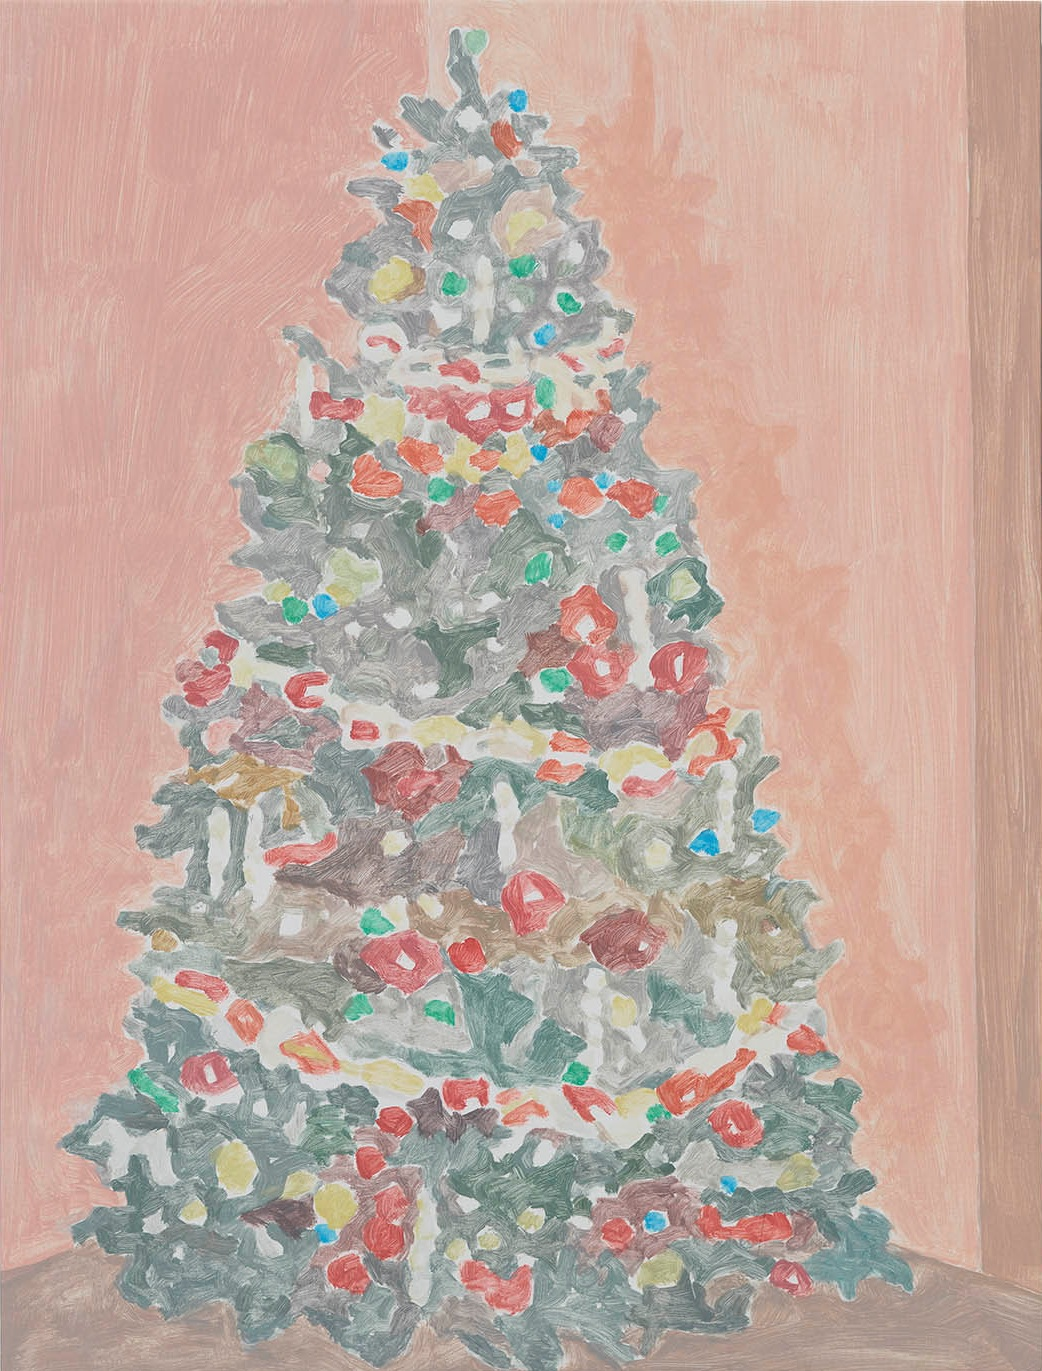 Xmas Tree (paperchain), acrylic on canvas, 32 x 24.25 inches, 2016.